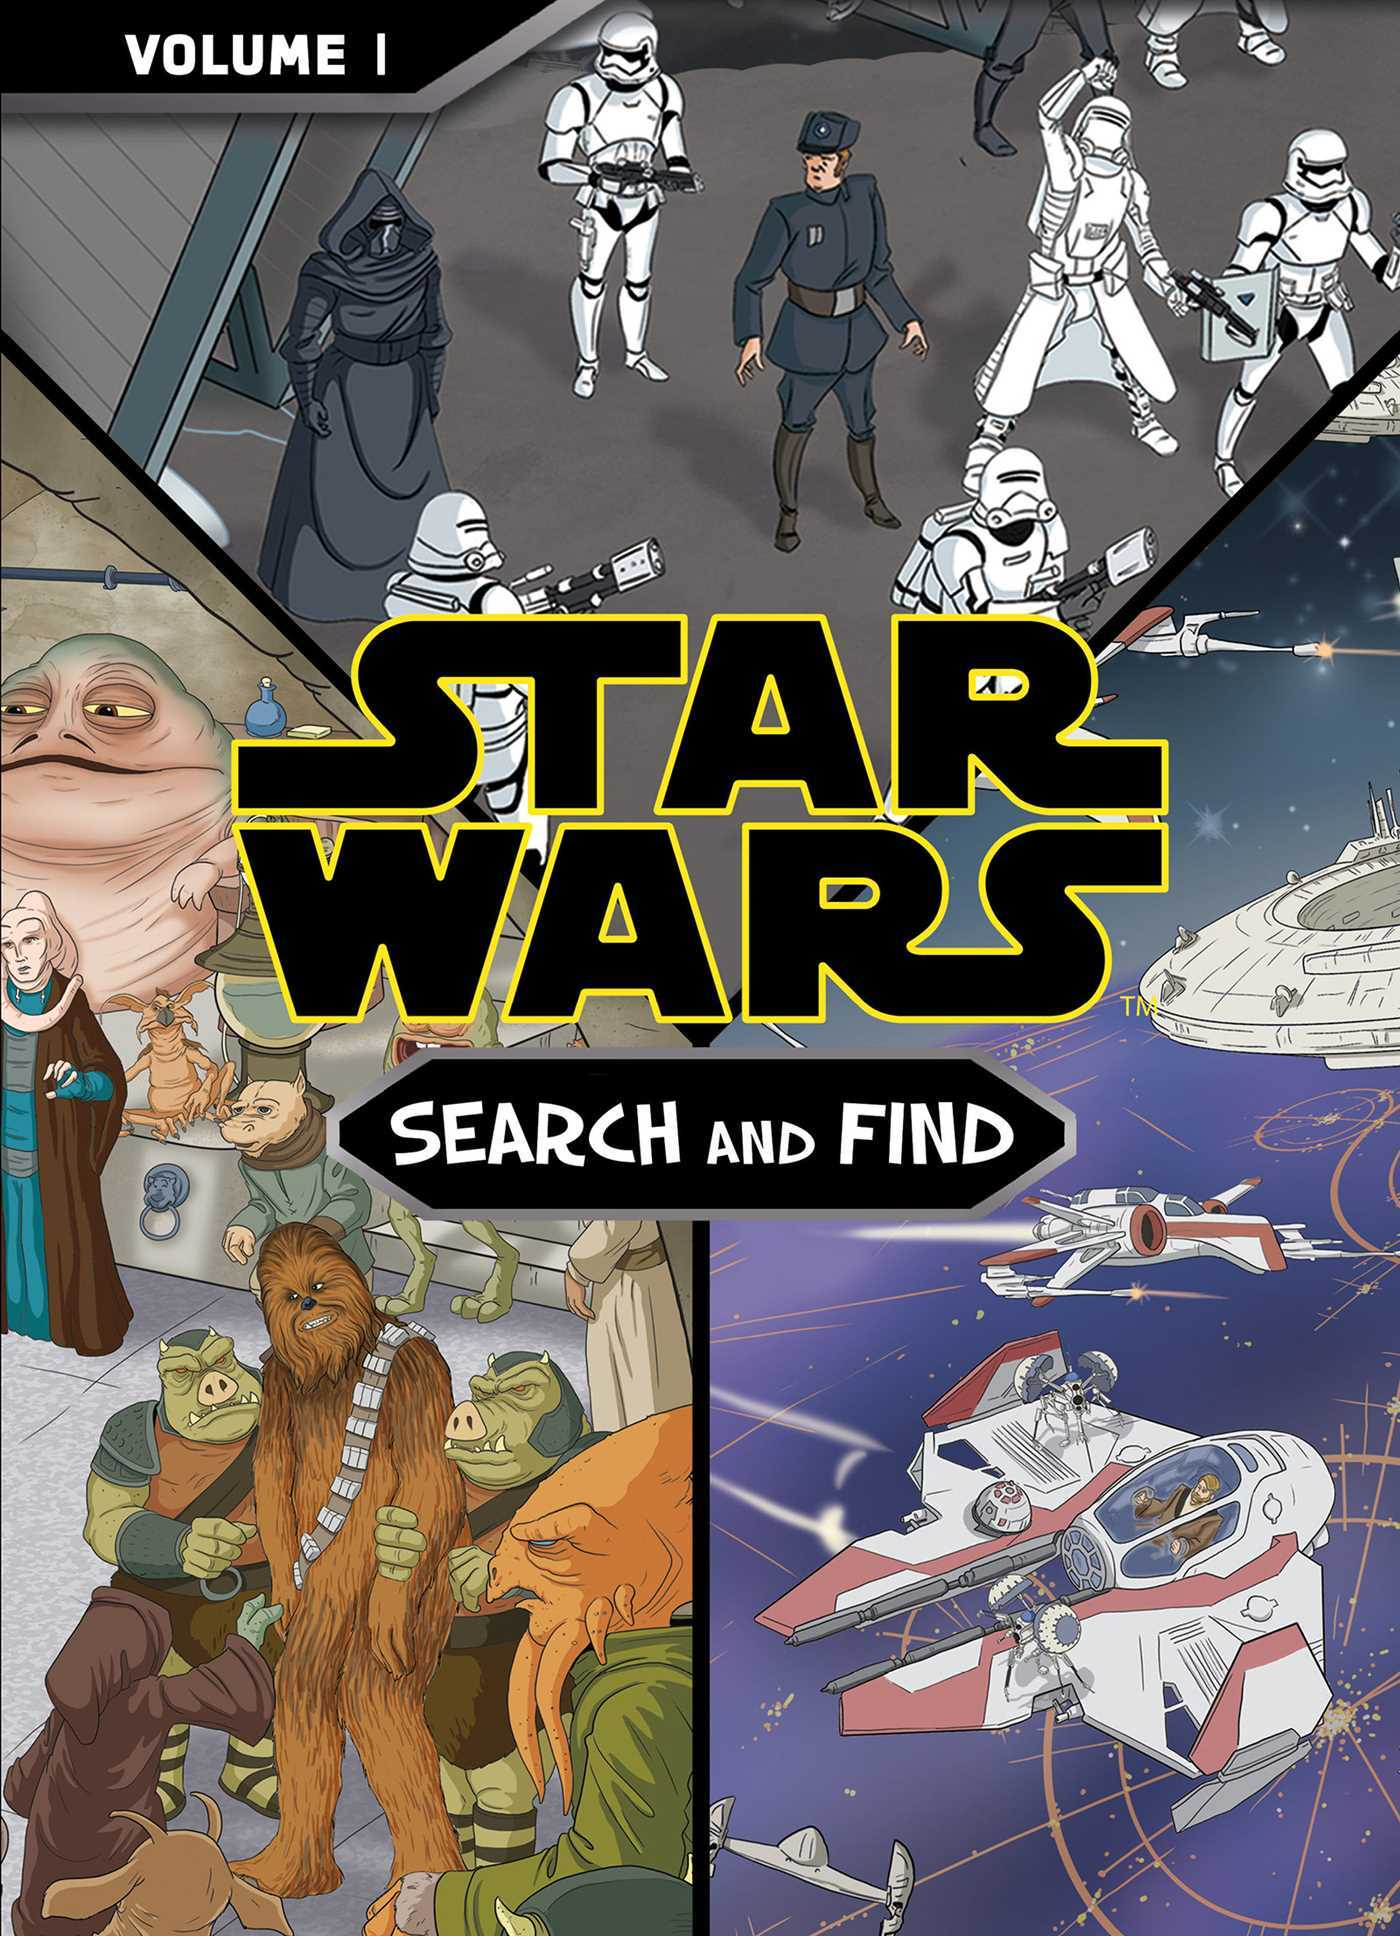 Star Wars: The Force Awakens Search and Find